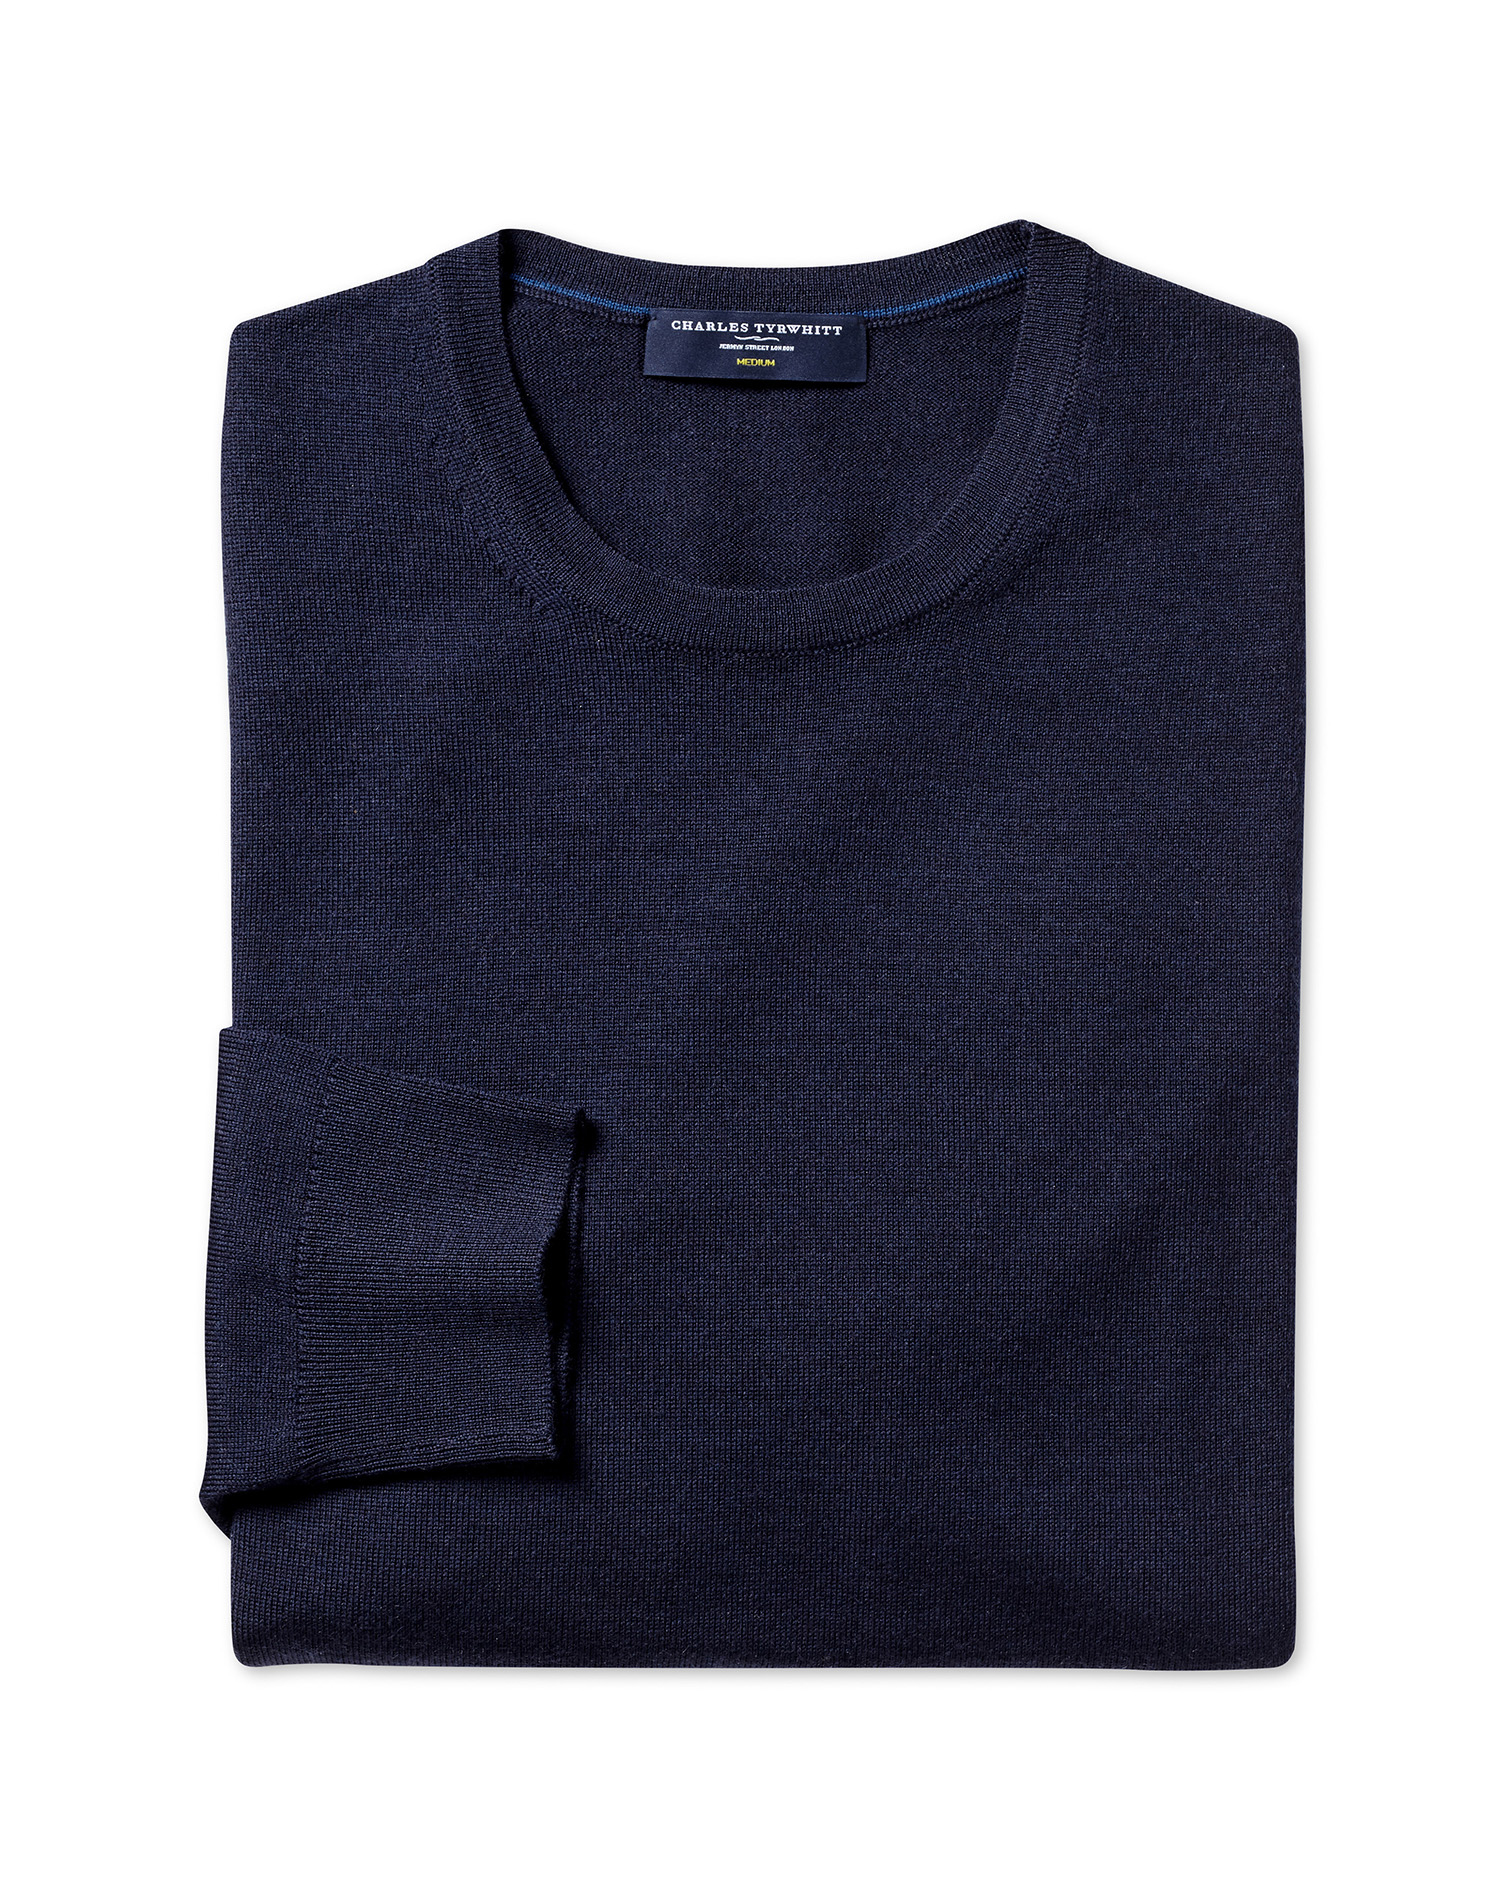 Navy Merino Wool Crew Neck Jumper Size Large by Charles Tyrwhitt